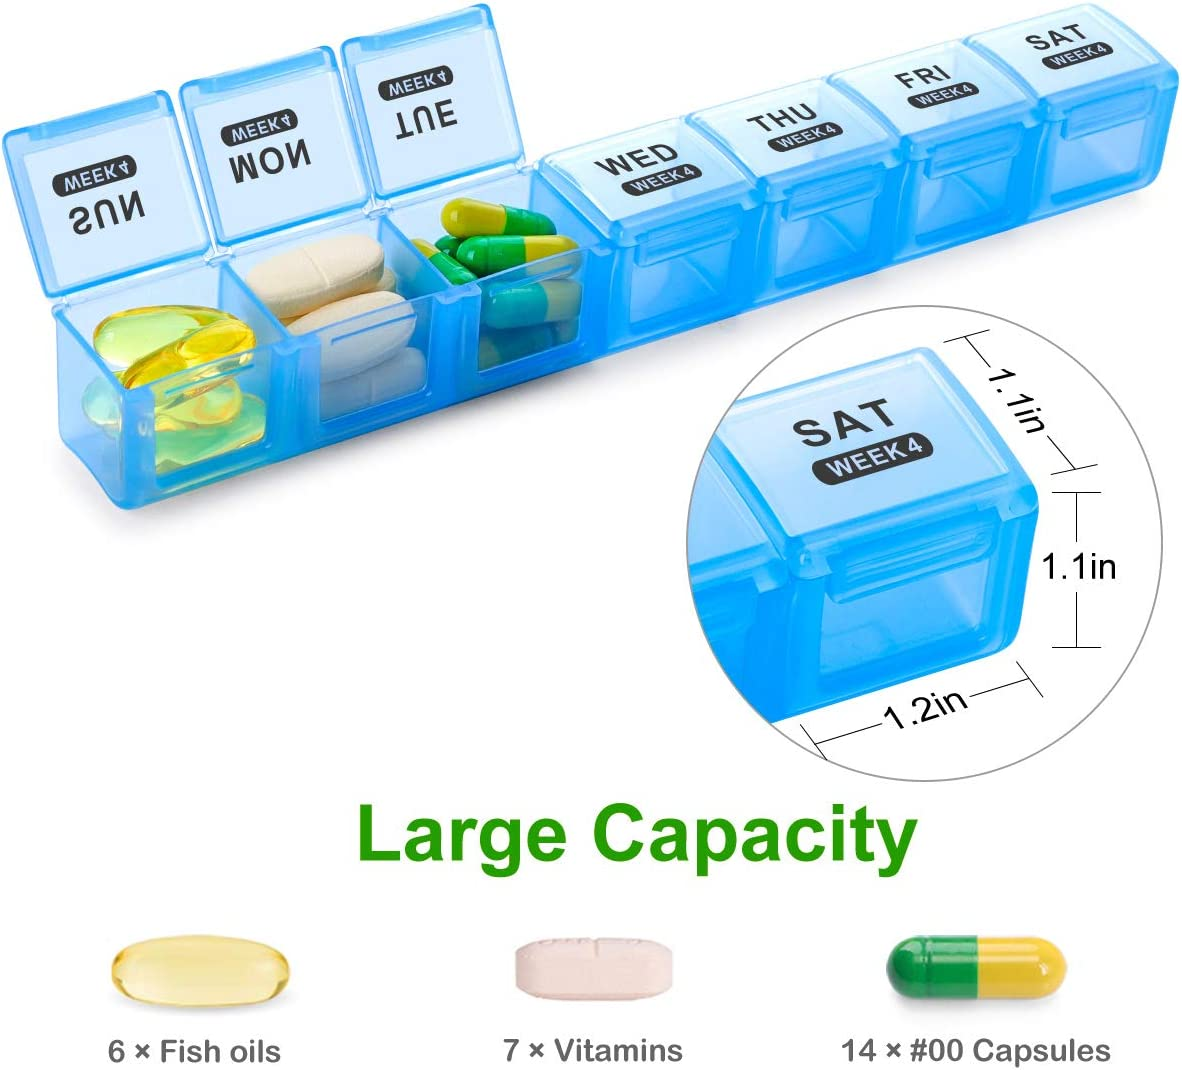 Monthly Pill Organizer 28 Day Case Organizerd by Week, Sukuos Moisture-Resistant Large 4 Week Month Pill Cases with Dust-Proof Box for Pills/Vitamin/Fish Oil/Supplements: Health & Personal Care